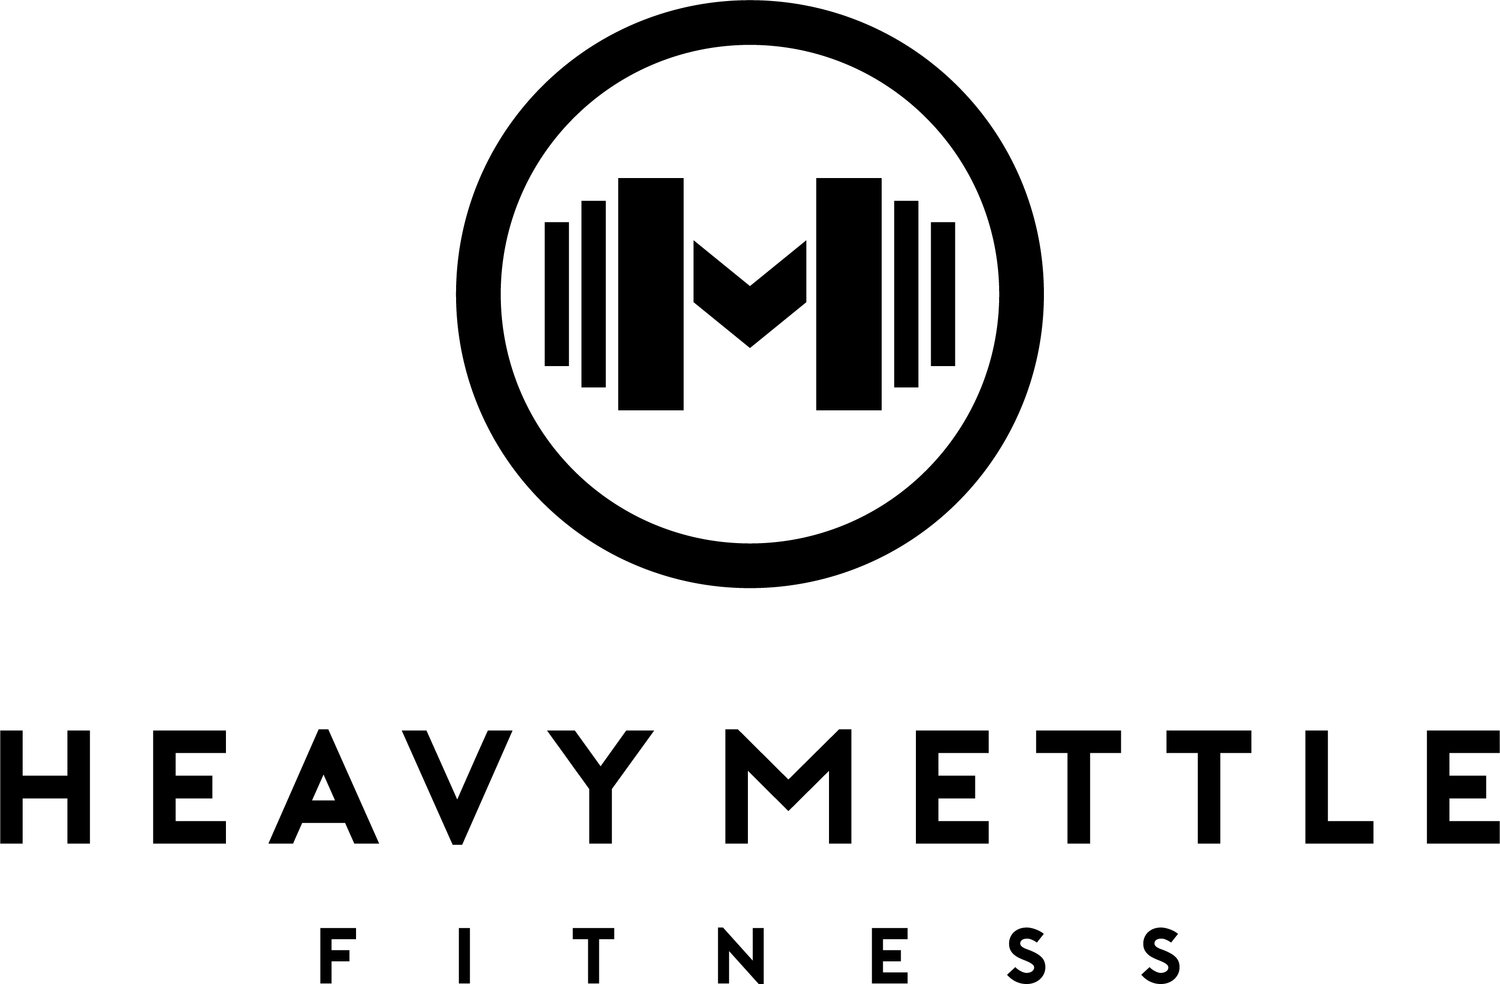 Heavy Mettle Fitness